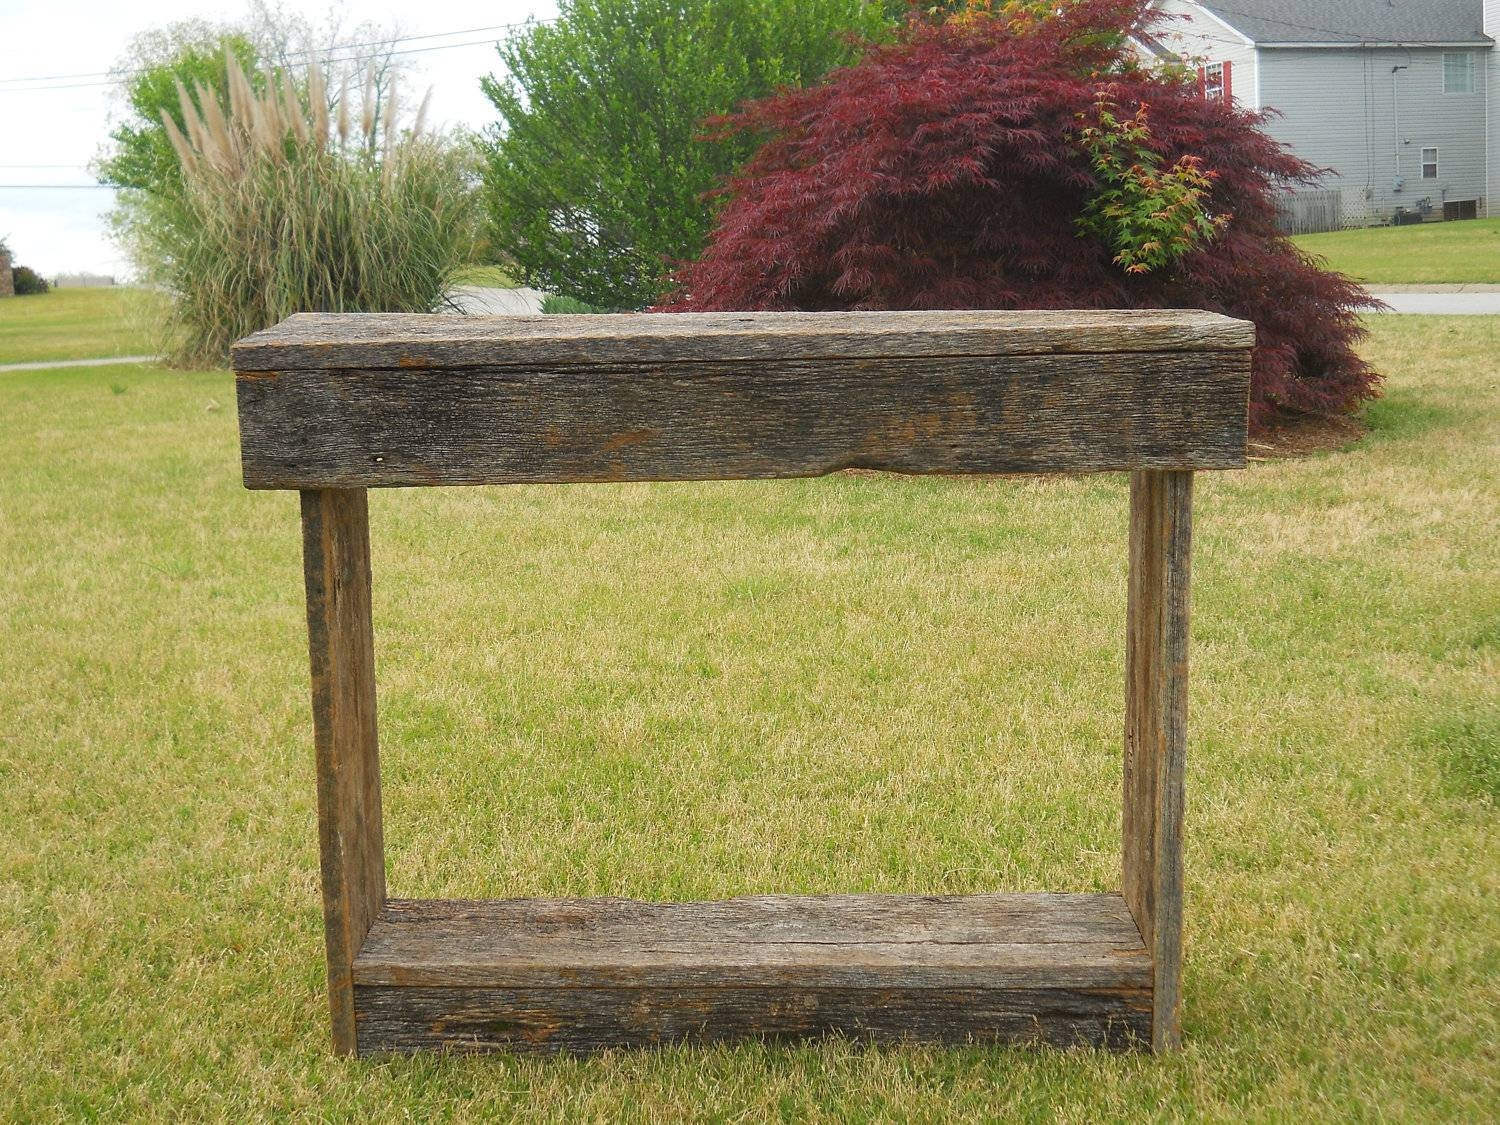 Sofa Table Design: Barn Wood Sofa Table Awesome Vintage Design intended for Barnwood Sofa Tables (Image 12 of 15)